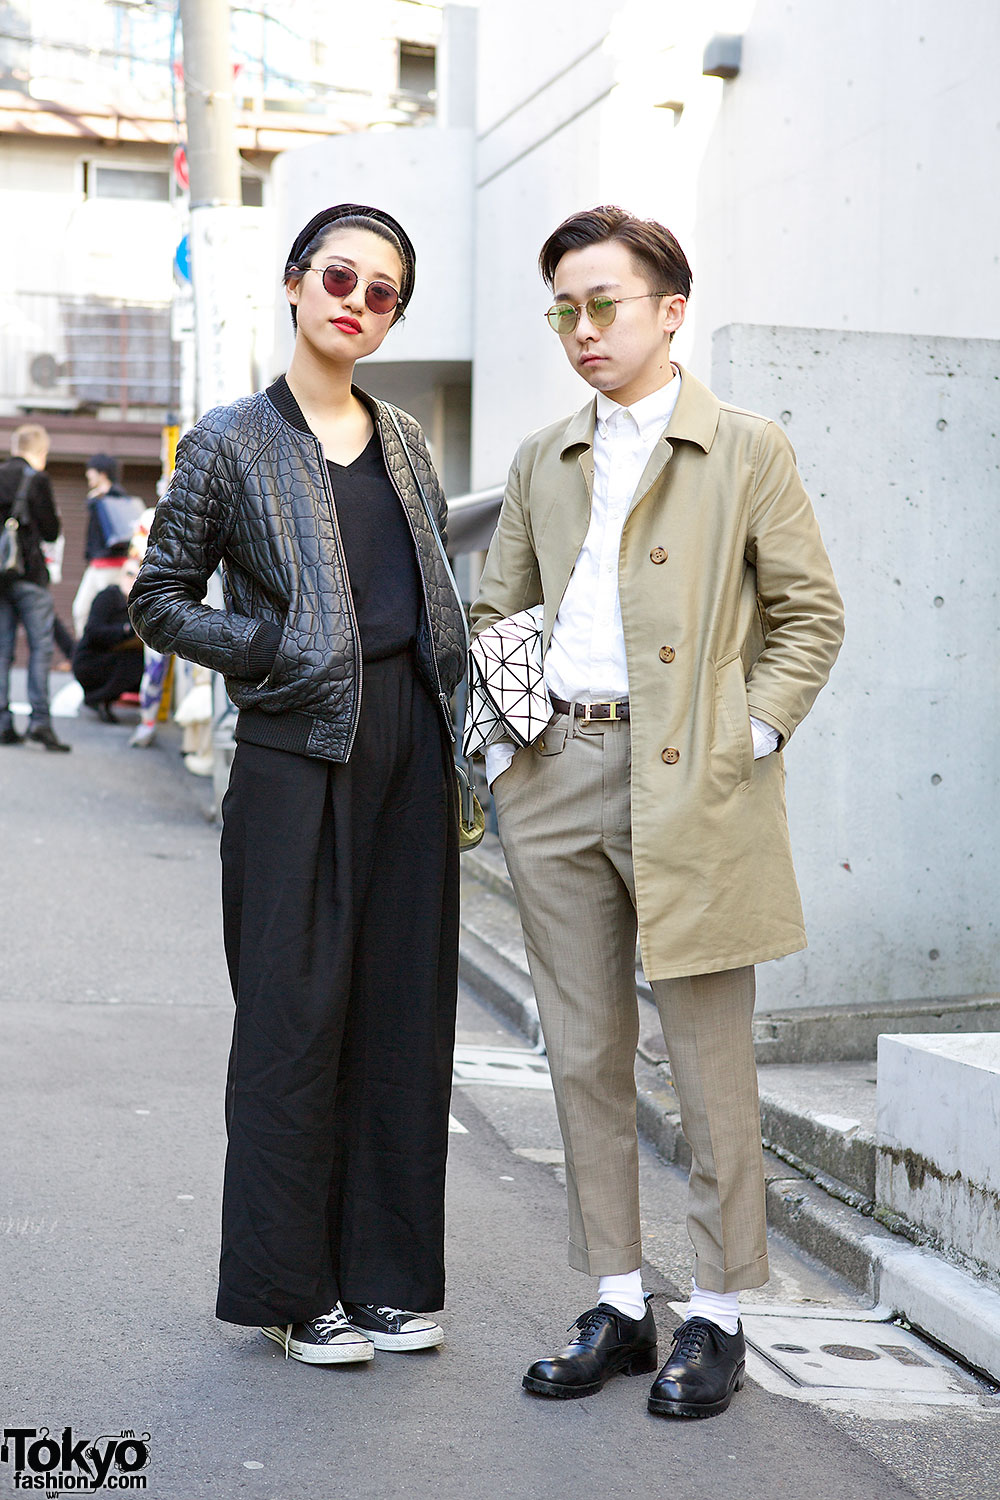 Resale Trench W Issey Miyake Bao Bao Comme Des Garcons Bomber Jacket Converse In Harajuku